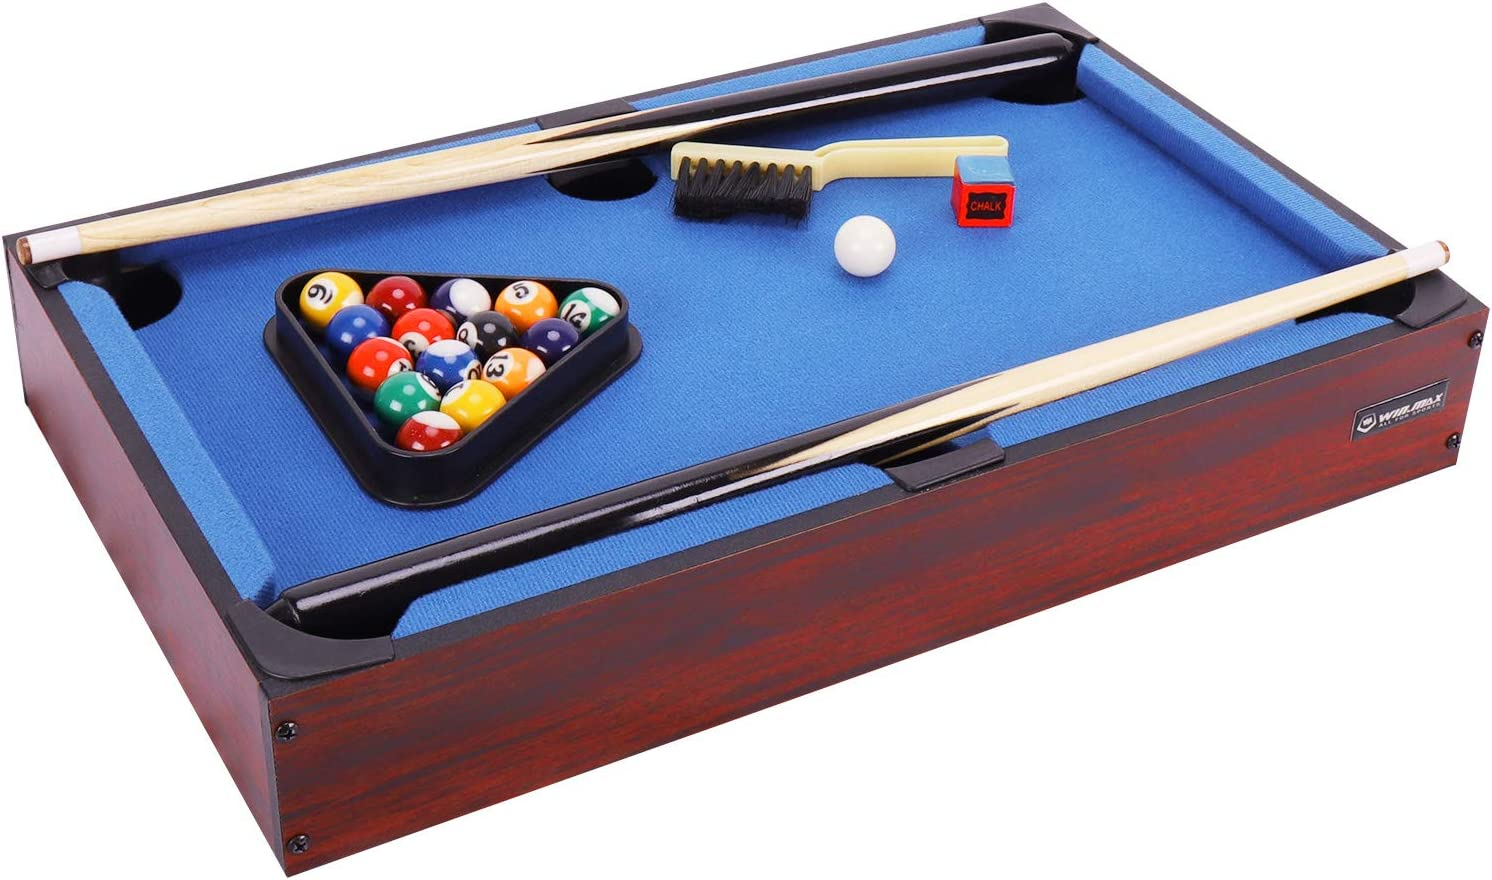 WIN.MAX Mini Pool Table, Classics 20-Inch Table Top Billiard Table, Blue, Gift for Kids